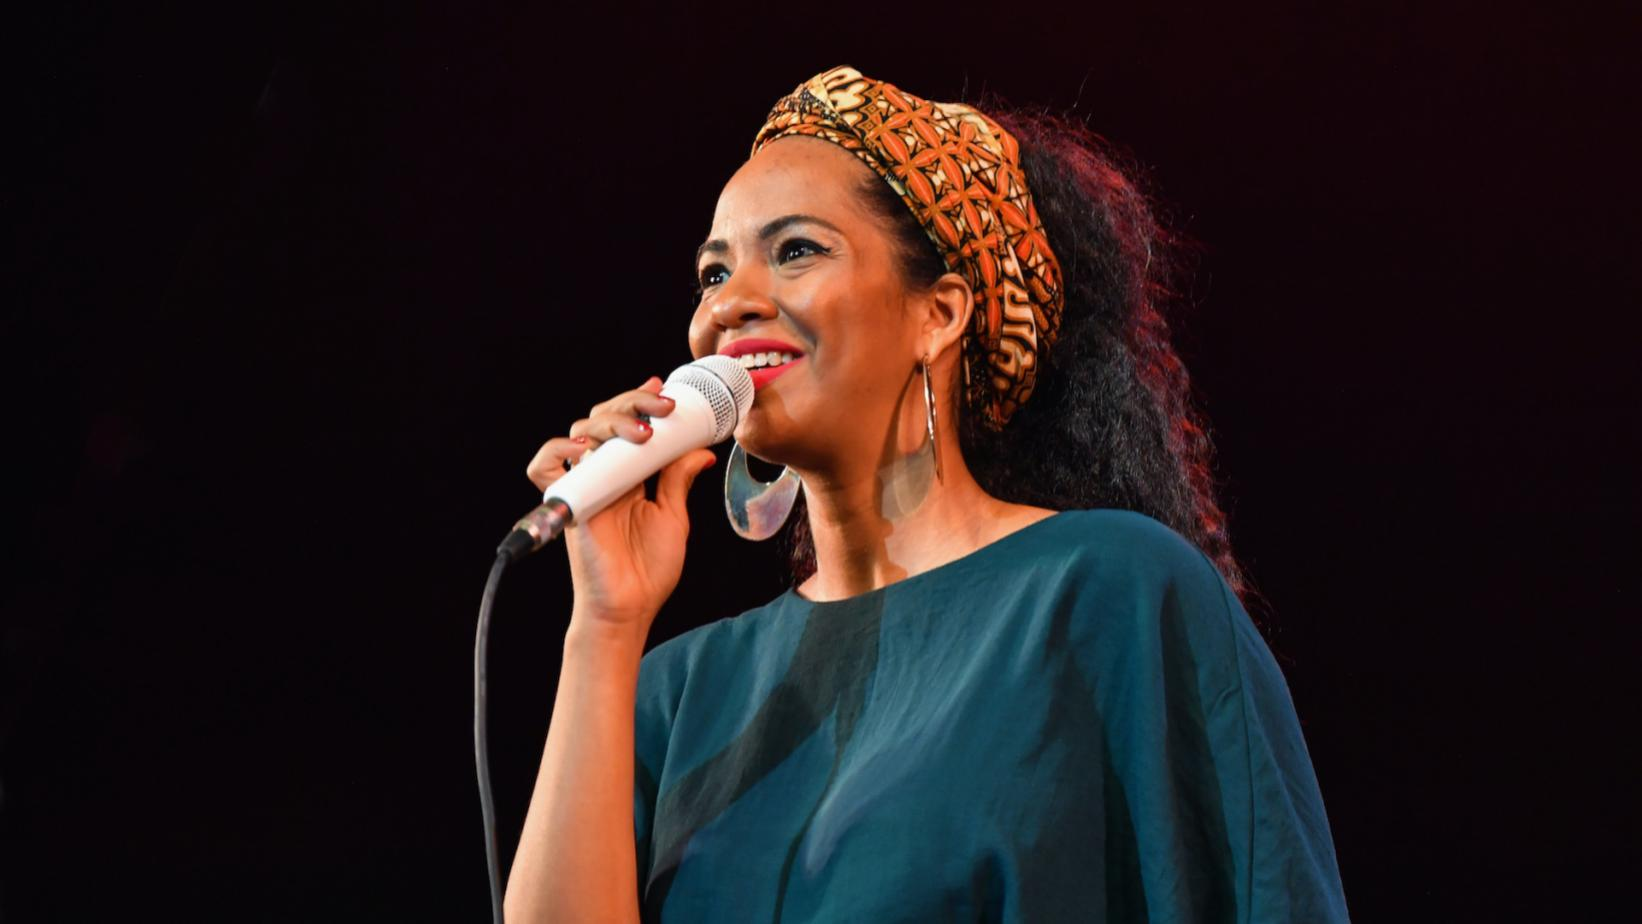 Photo of Eme Alfonso performing at the National Theatre of Cuba during the 33rd International Jazz Plaza Festival on January 21, 2018, in Havana, Cuba